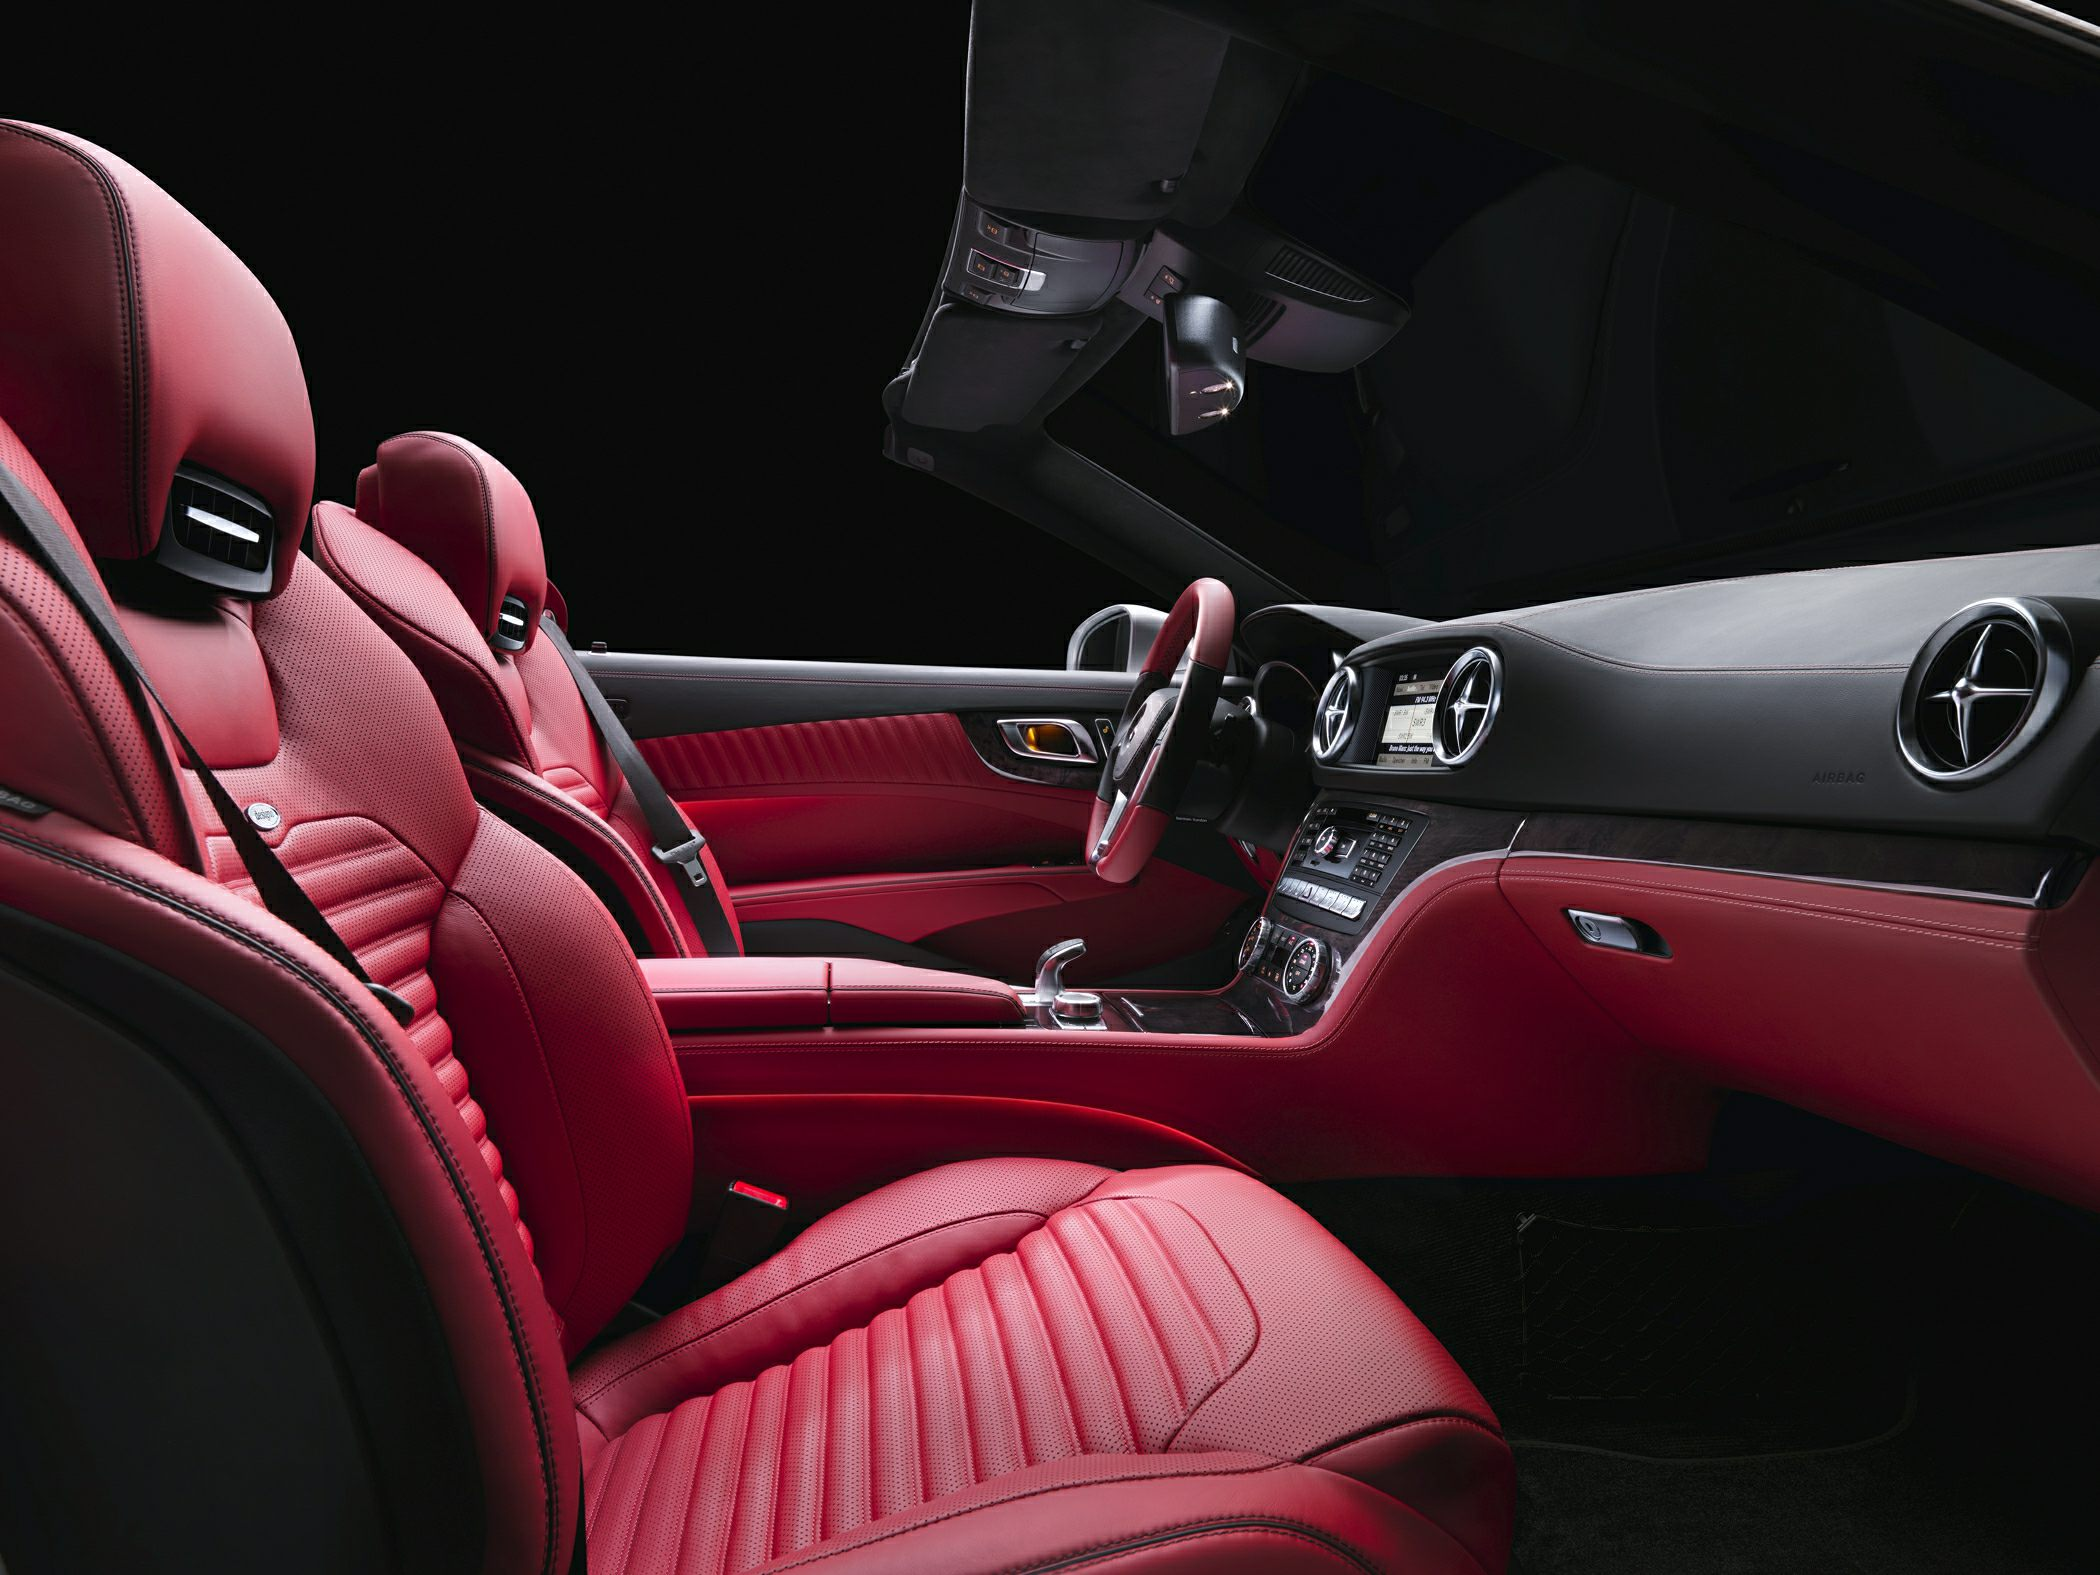 Mercedez-Benz SL550 Interior Side View